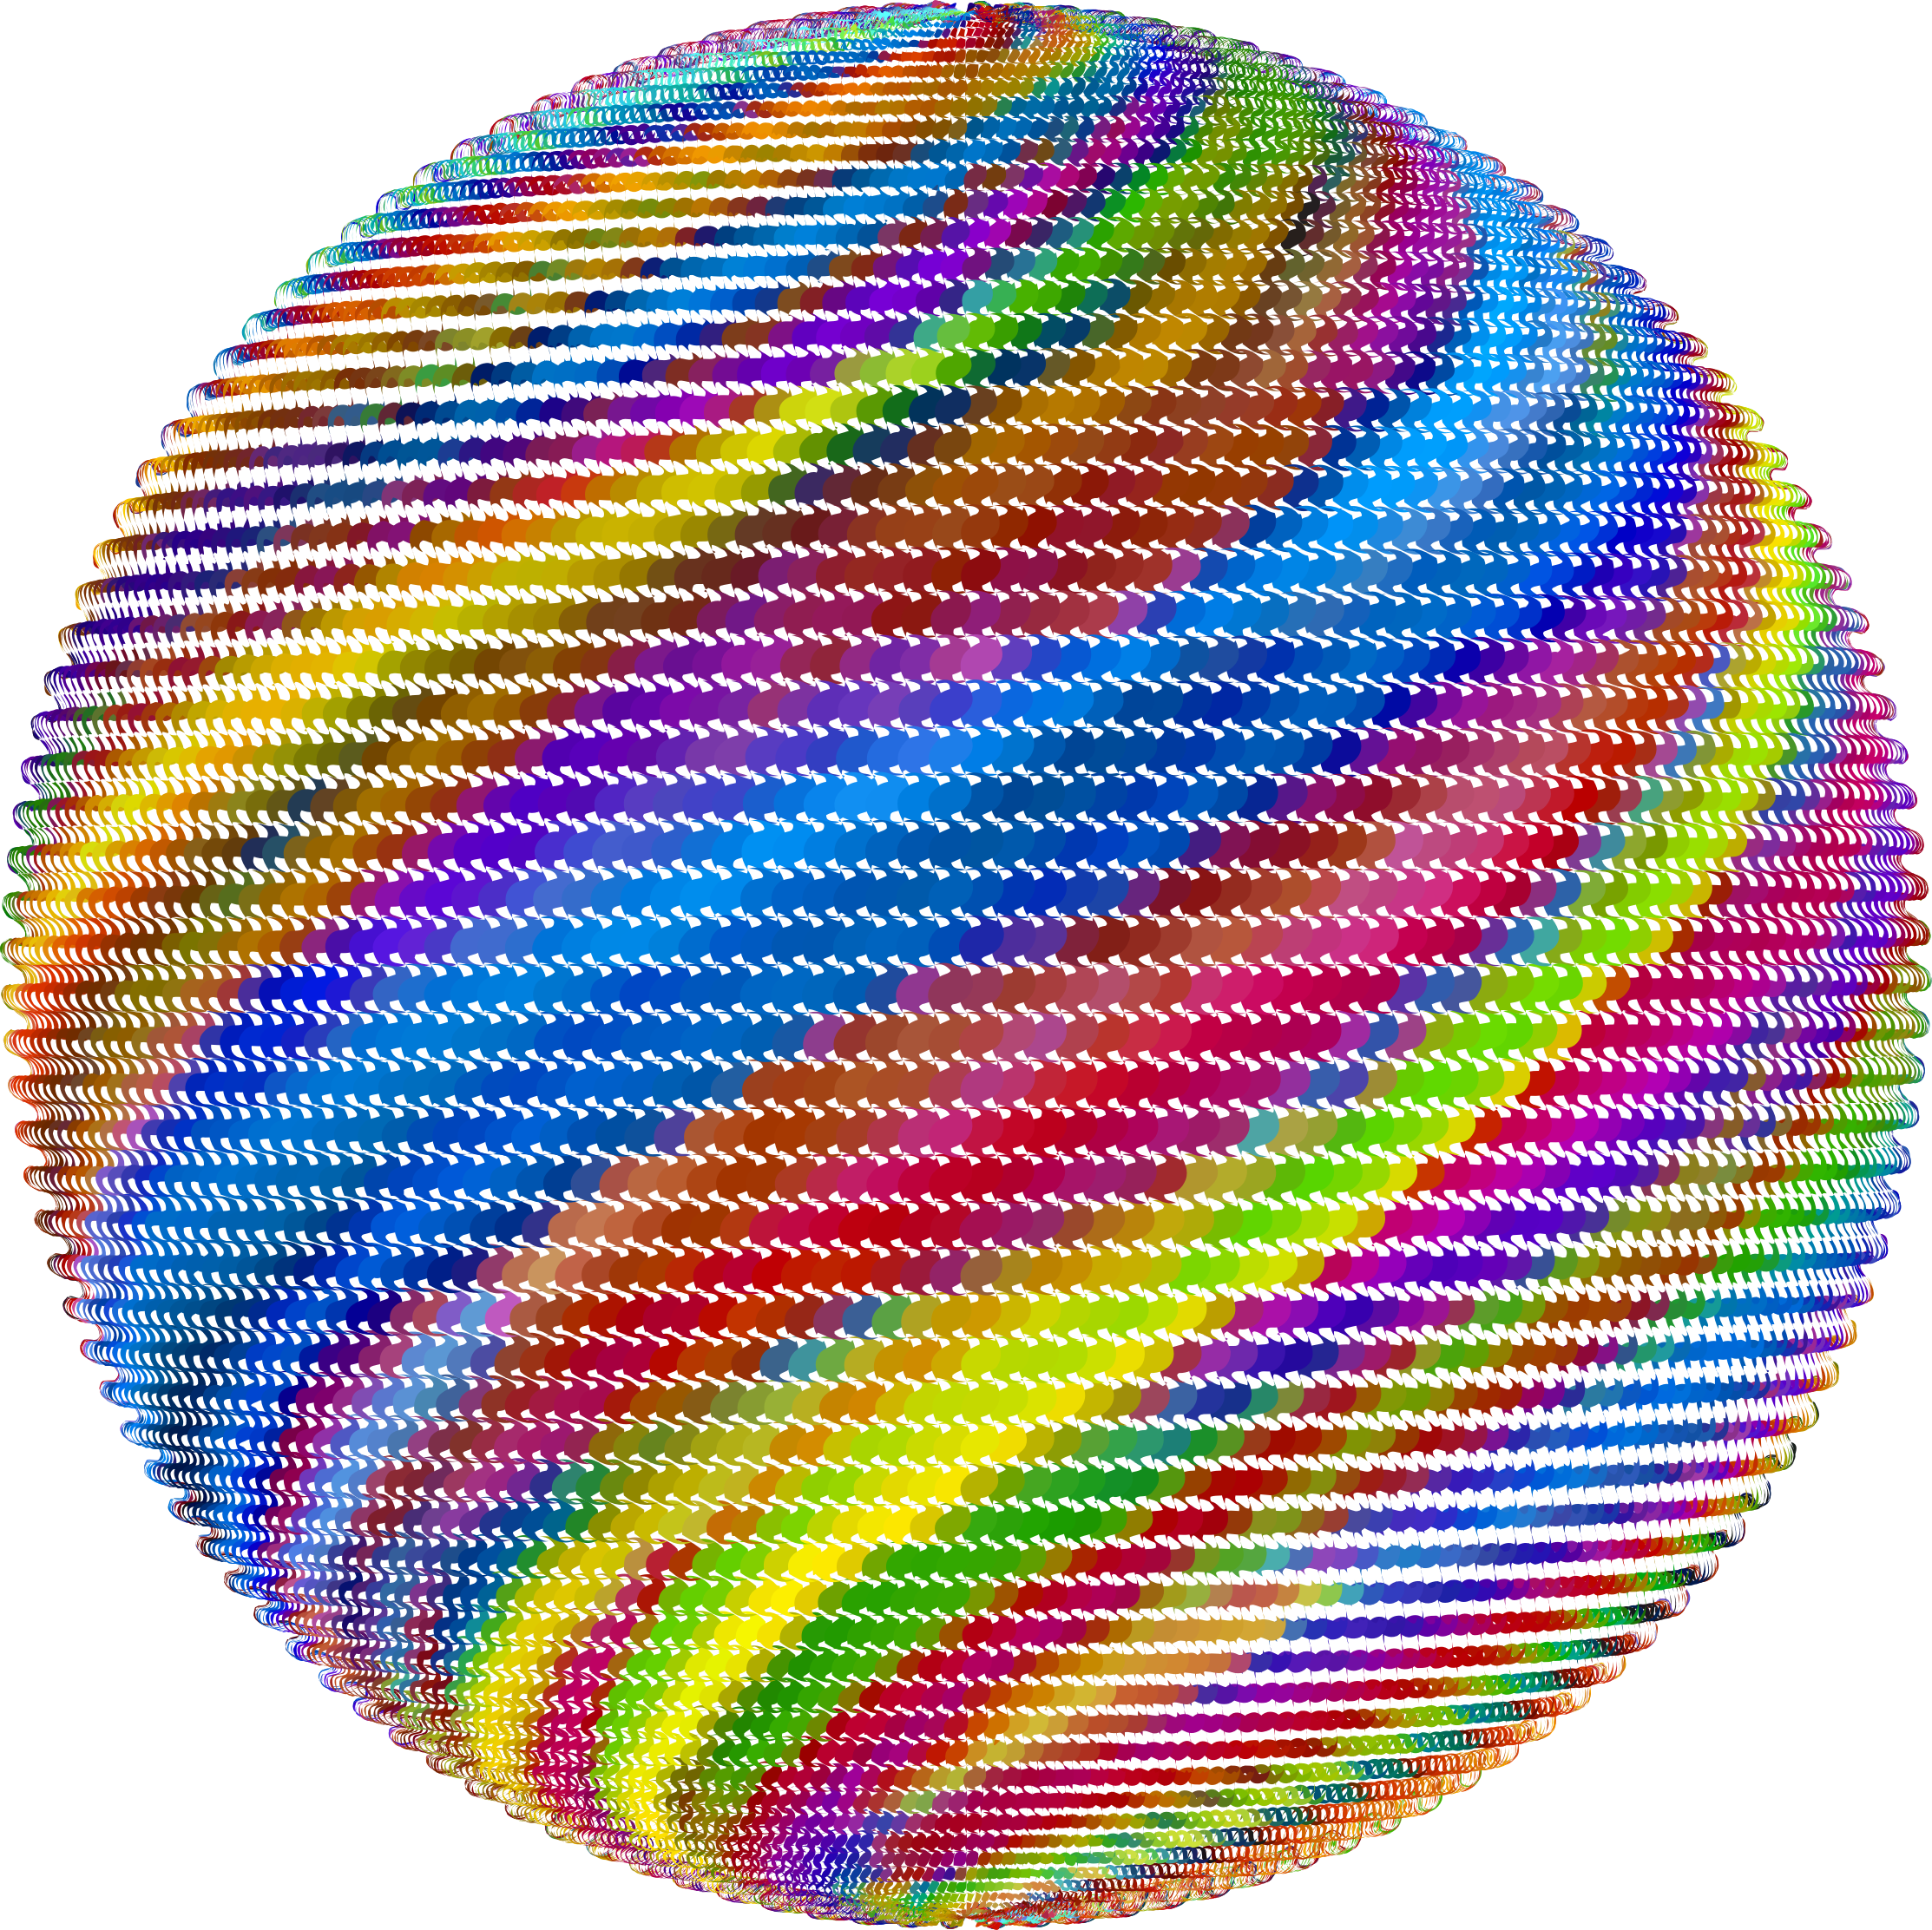 Prismatic Rippling Orb by GDJ